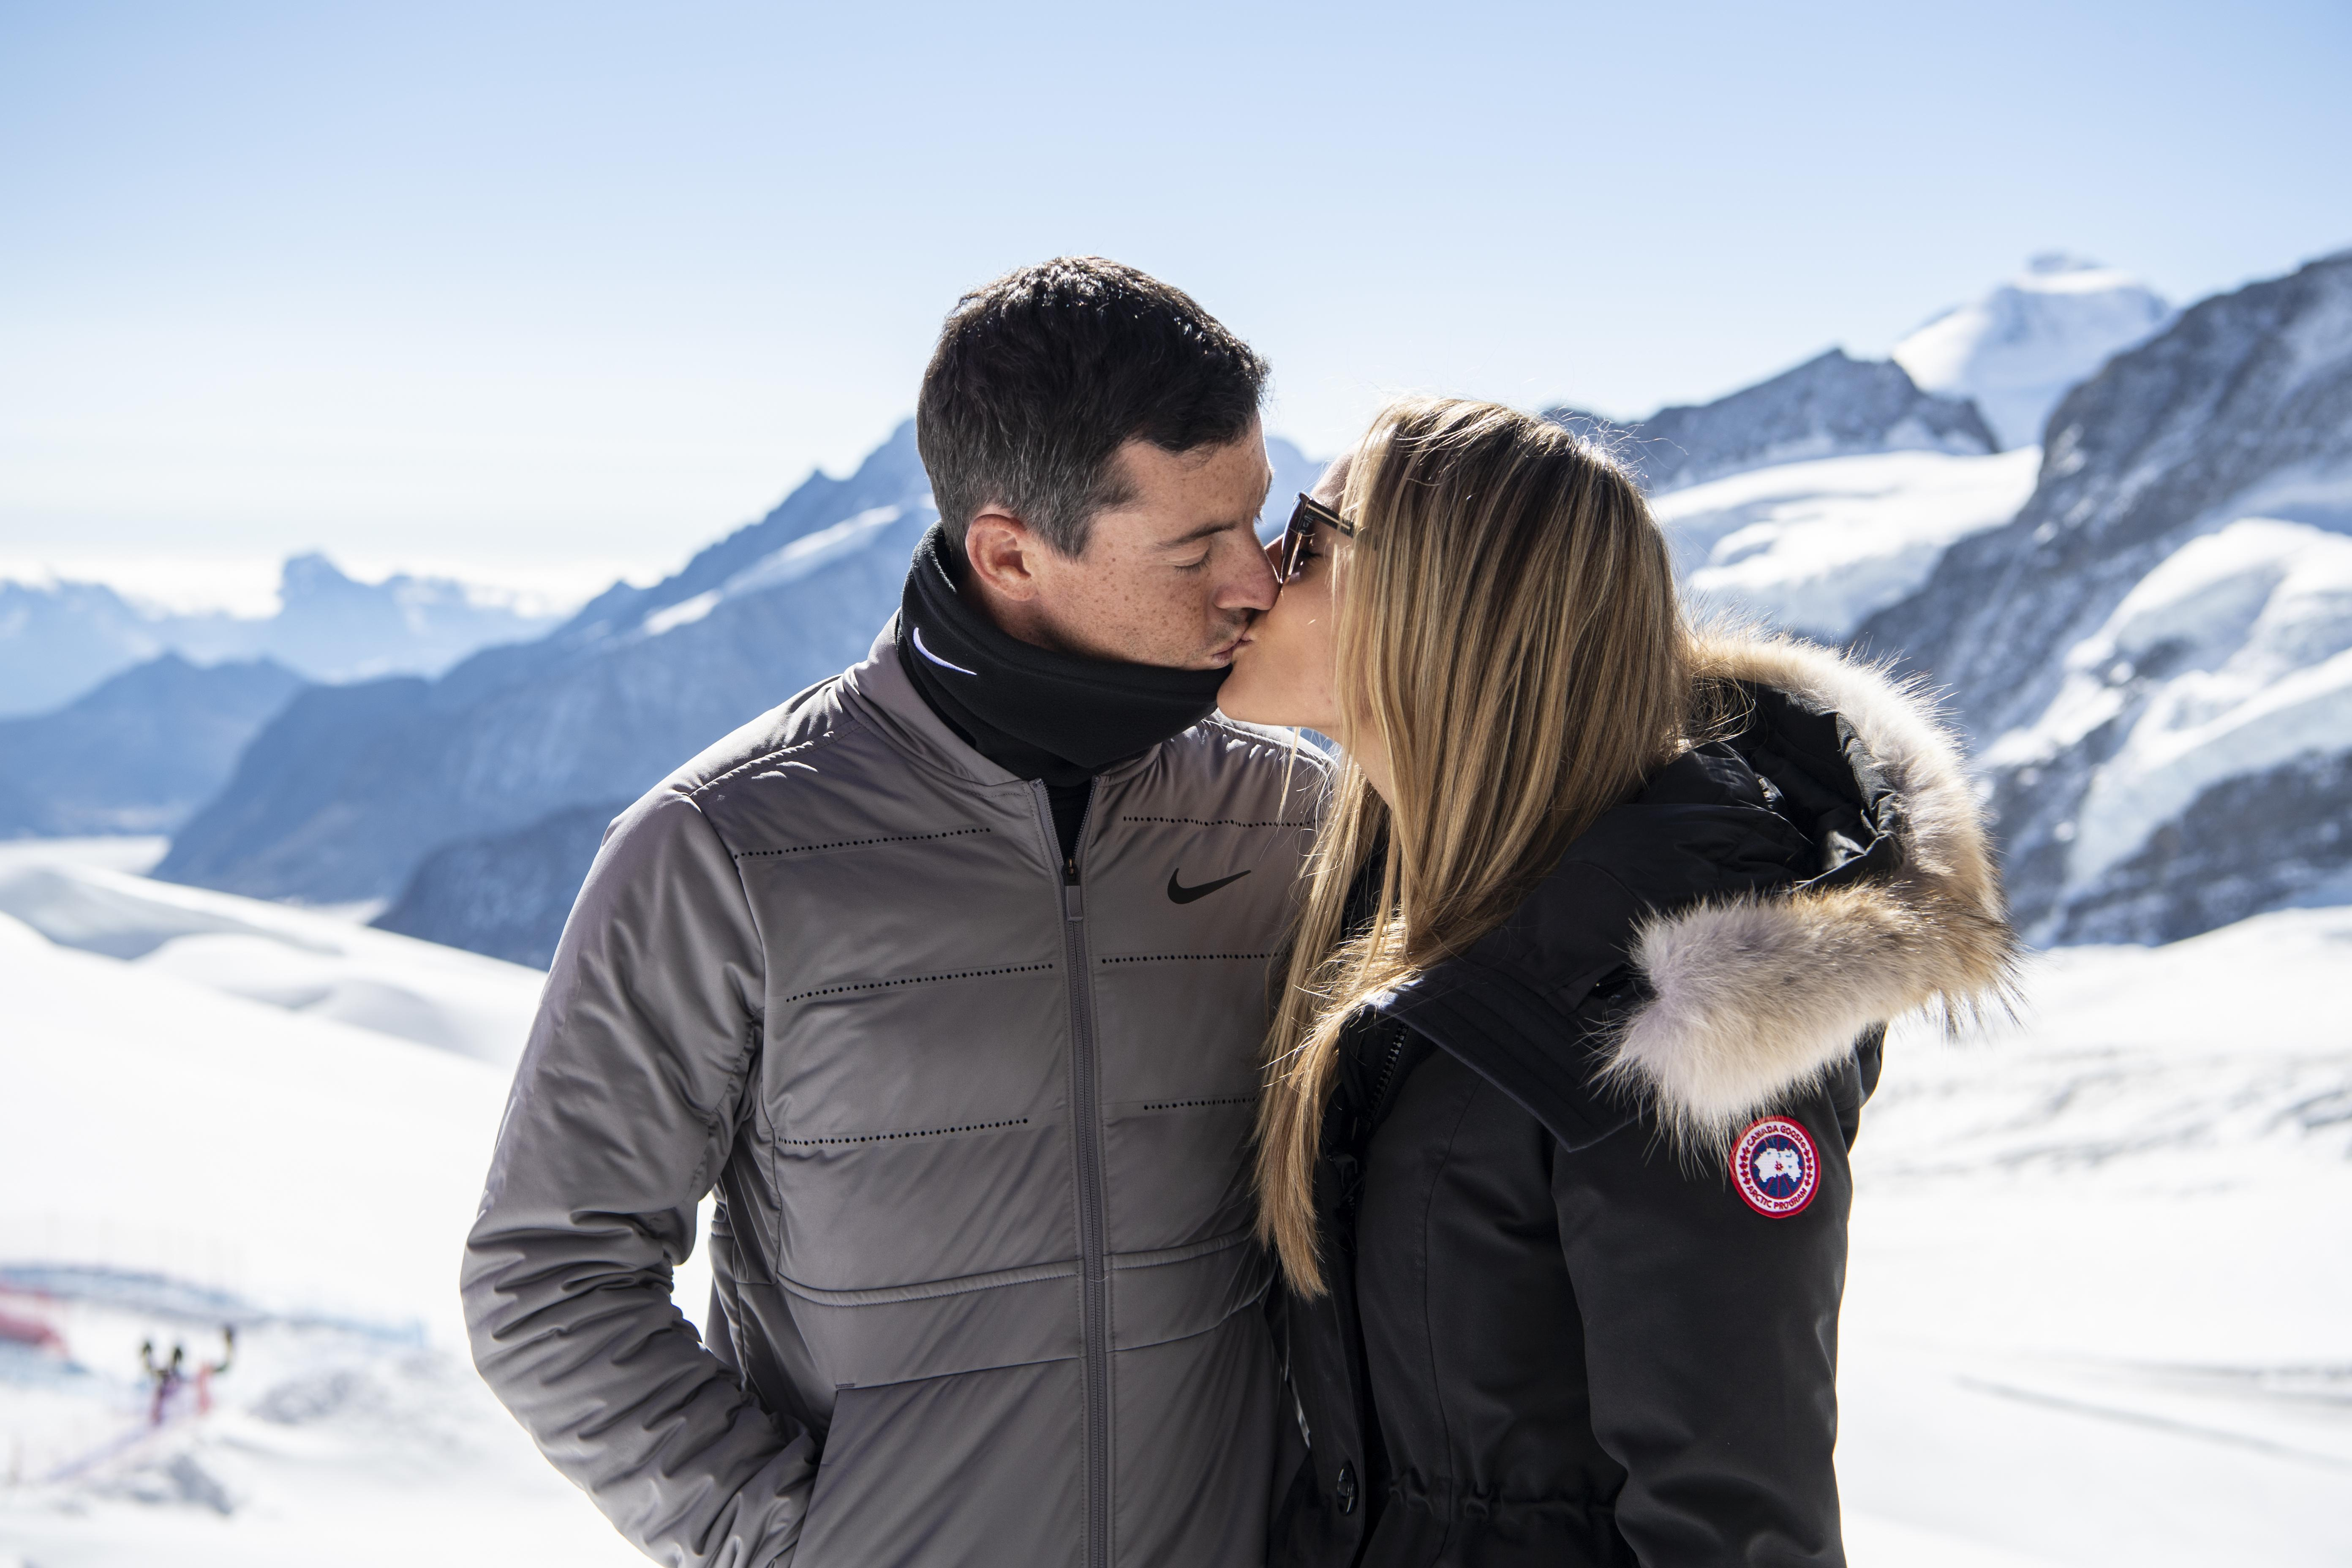 Rory McIlroy kisses his wife in the Swiss Alps